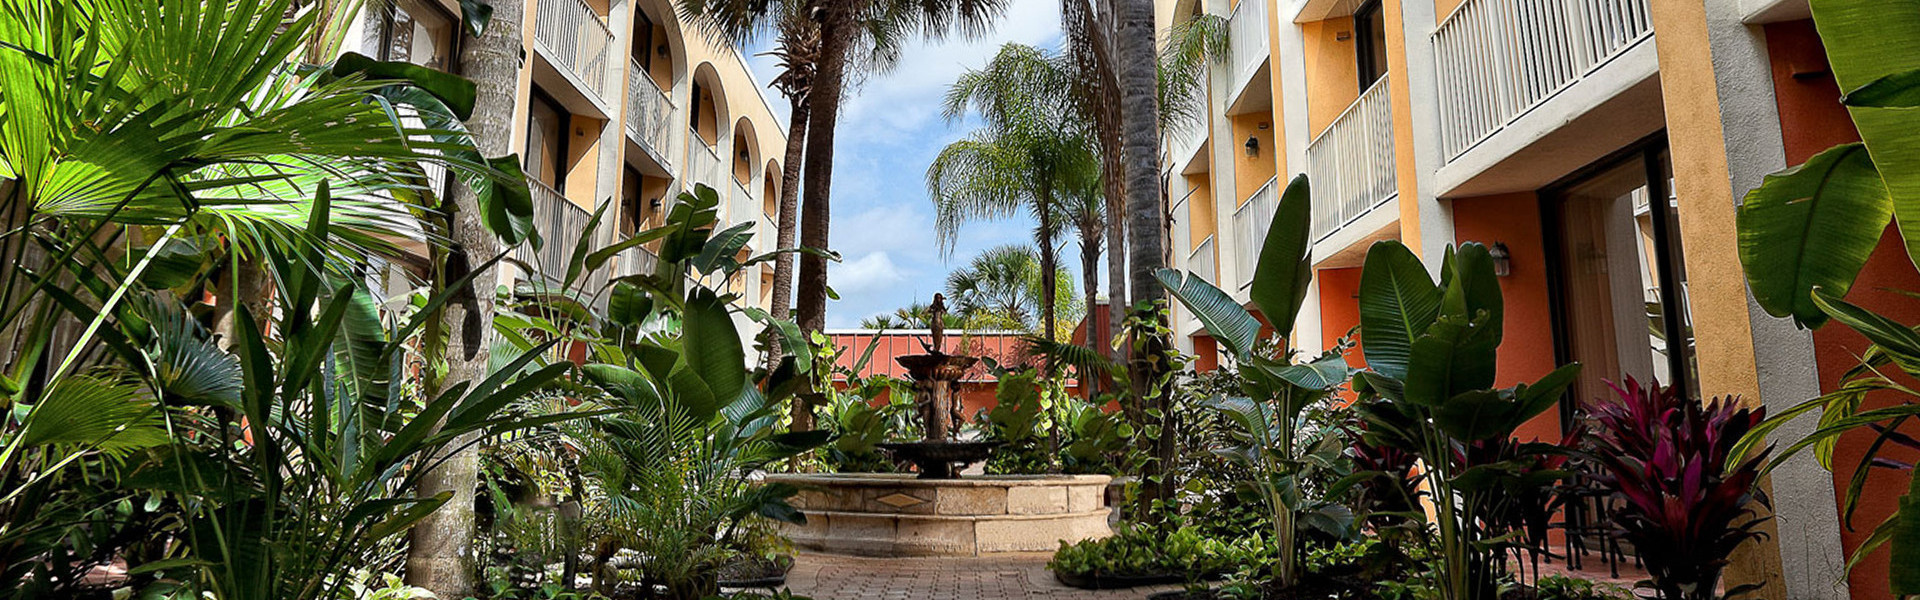 Family Reunion Hotel Deals In Orlando - Westgate Lakes Resort & Spa